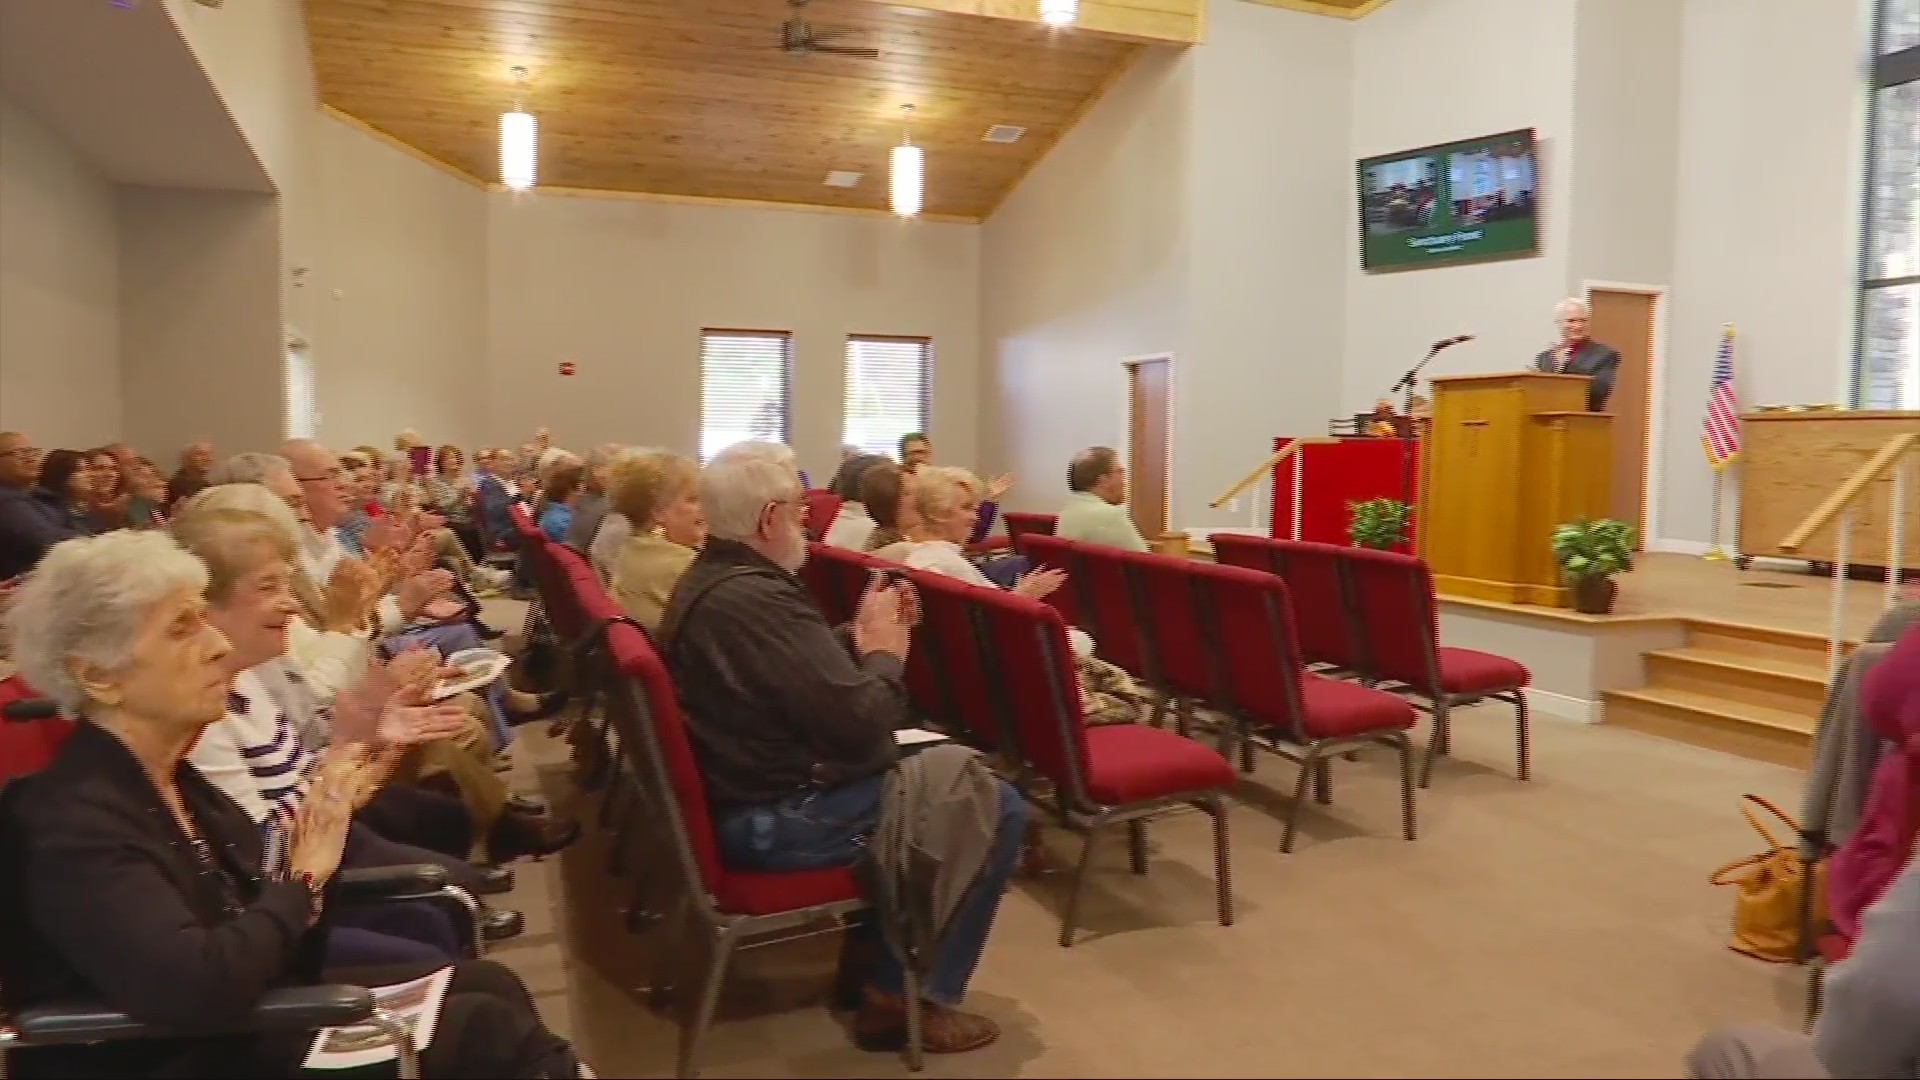 Congregation Gets a New Home, After Church Fire Years Ago